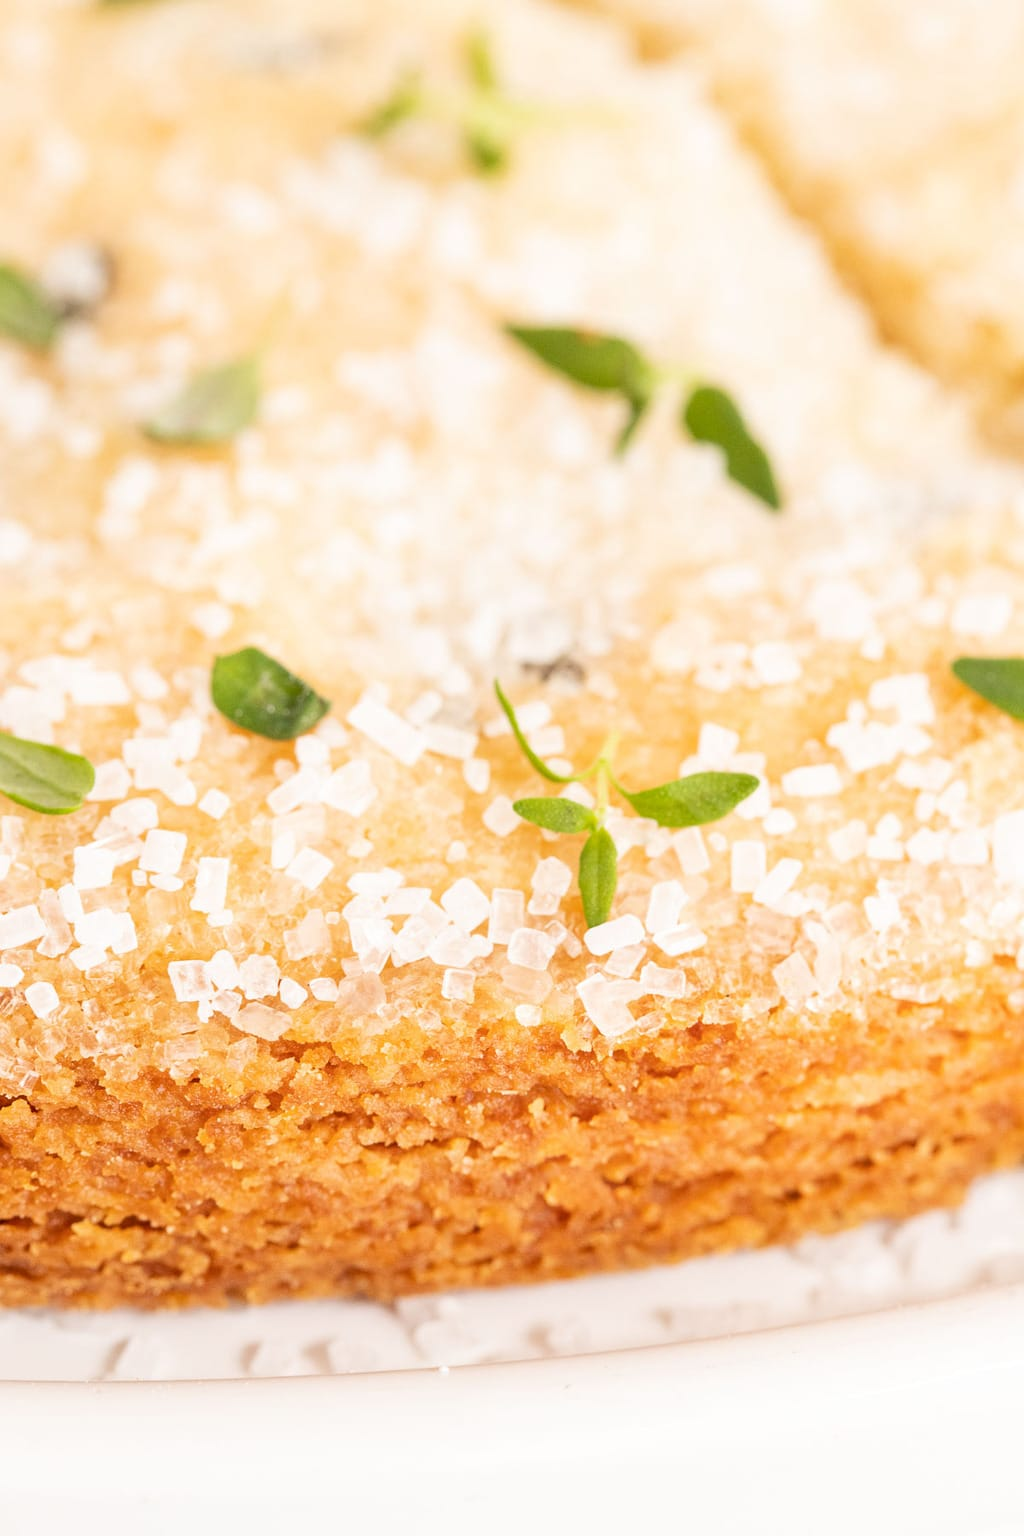 Vertical ultra closeup of the edge and top of a piece of Lemon Thyme Shortbread garnished with fresh thyme leaves.